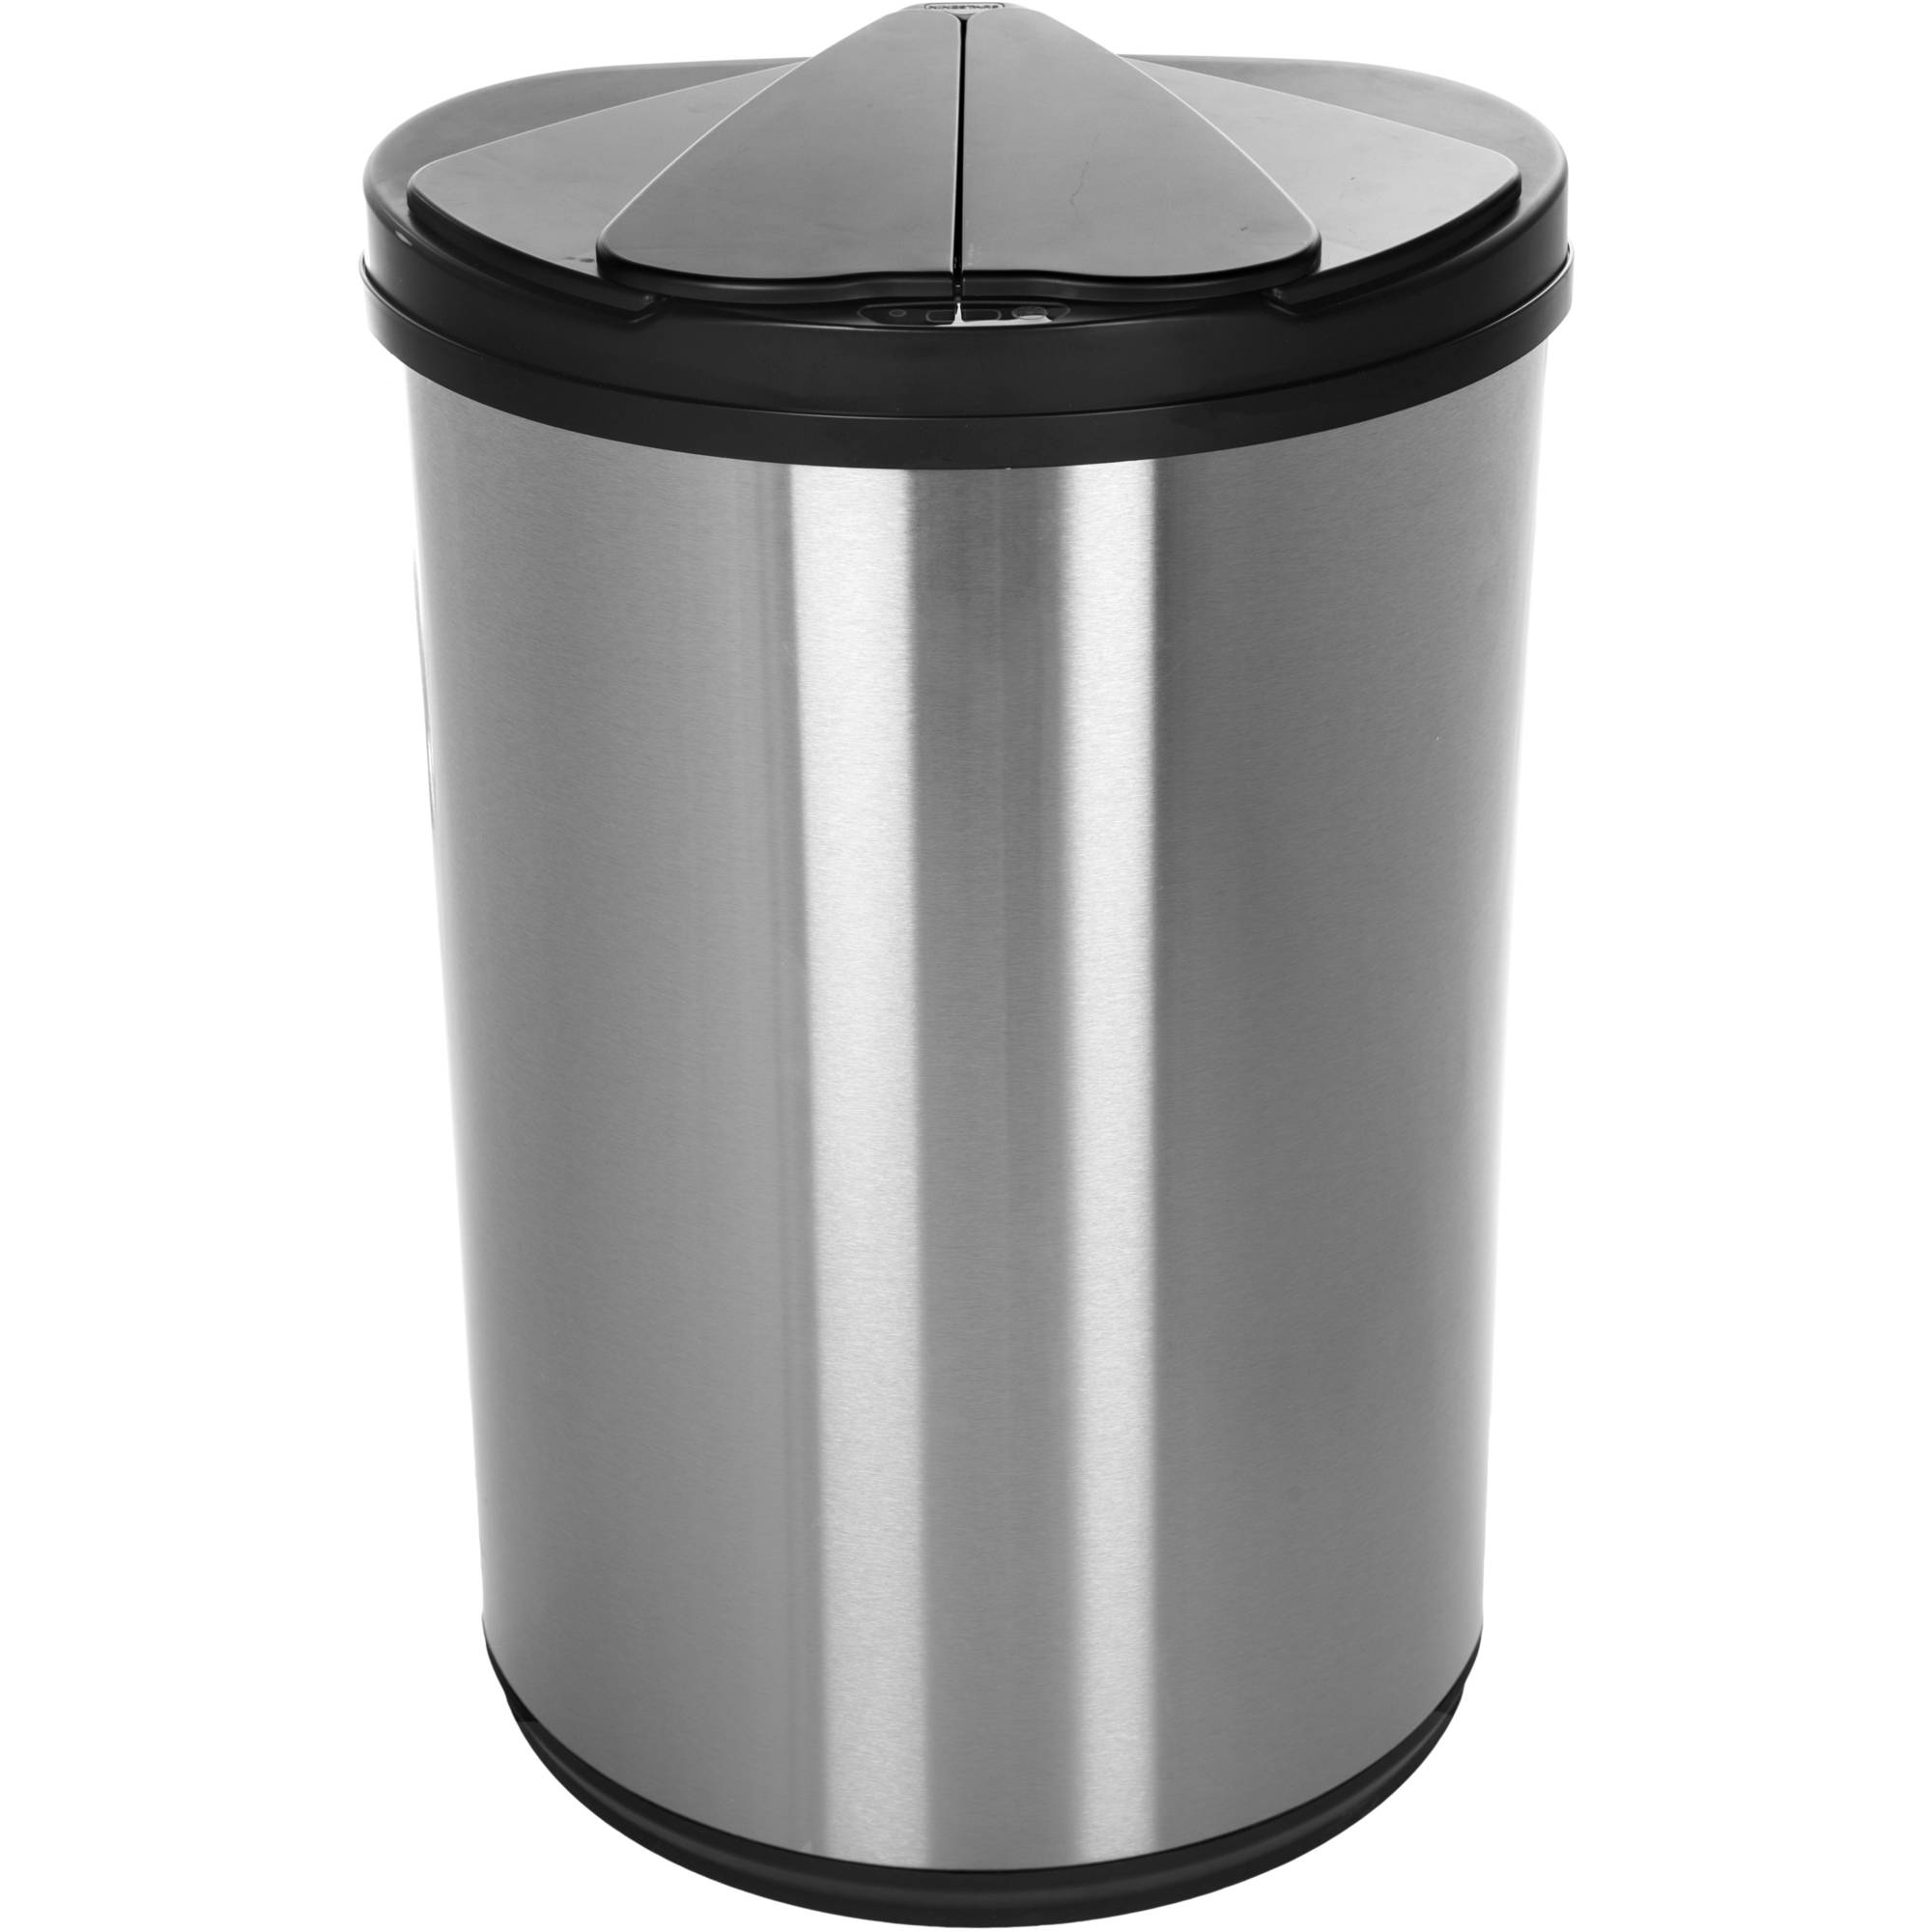 Nine Stars Stainless Steel Half Moon Sensored 12.4-Gallon Trash Can with Stainless Steel Lid